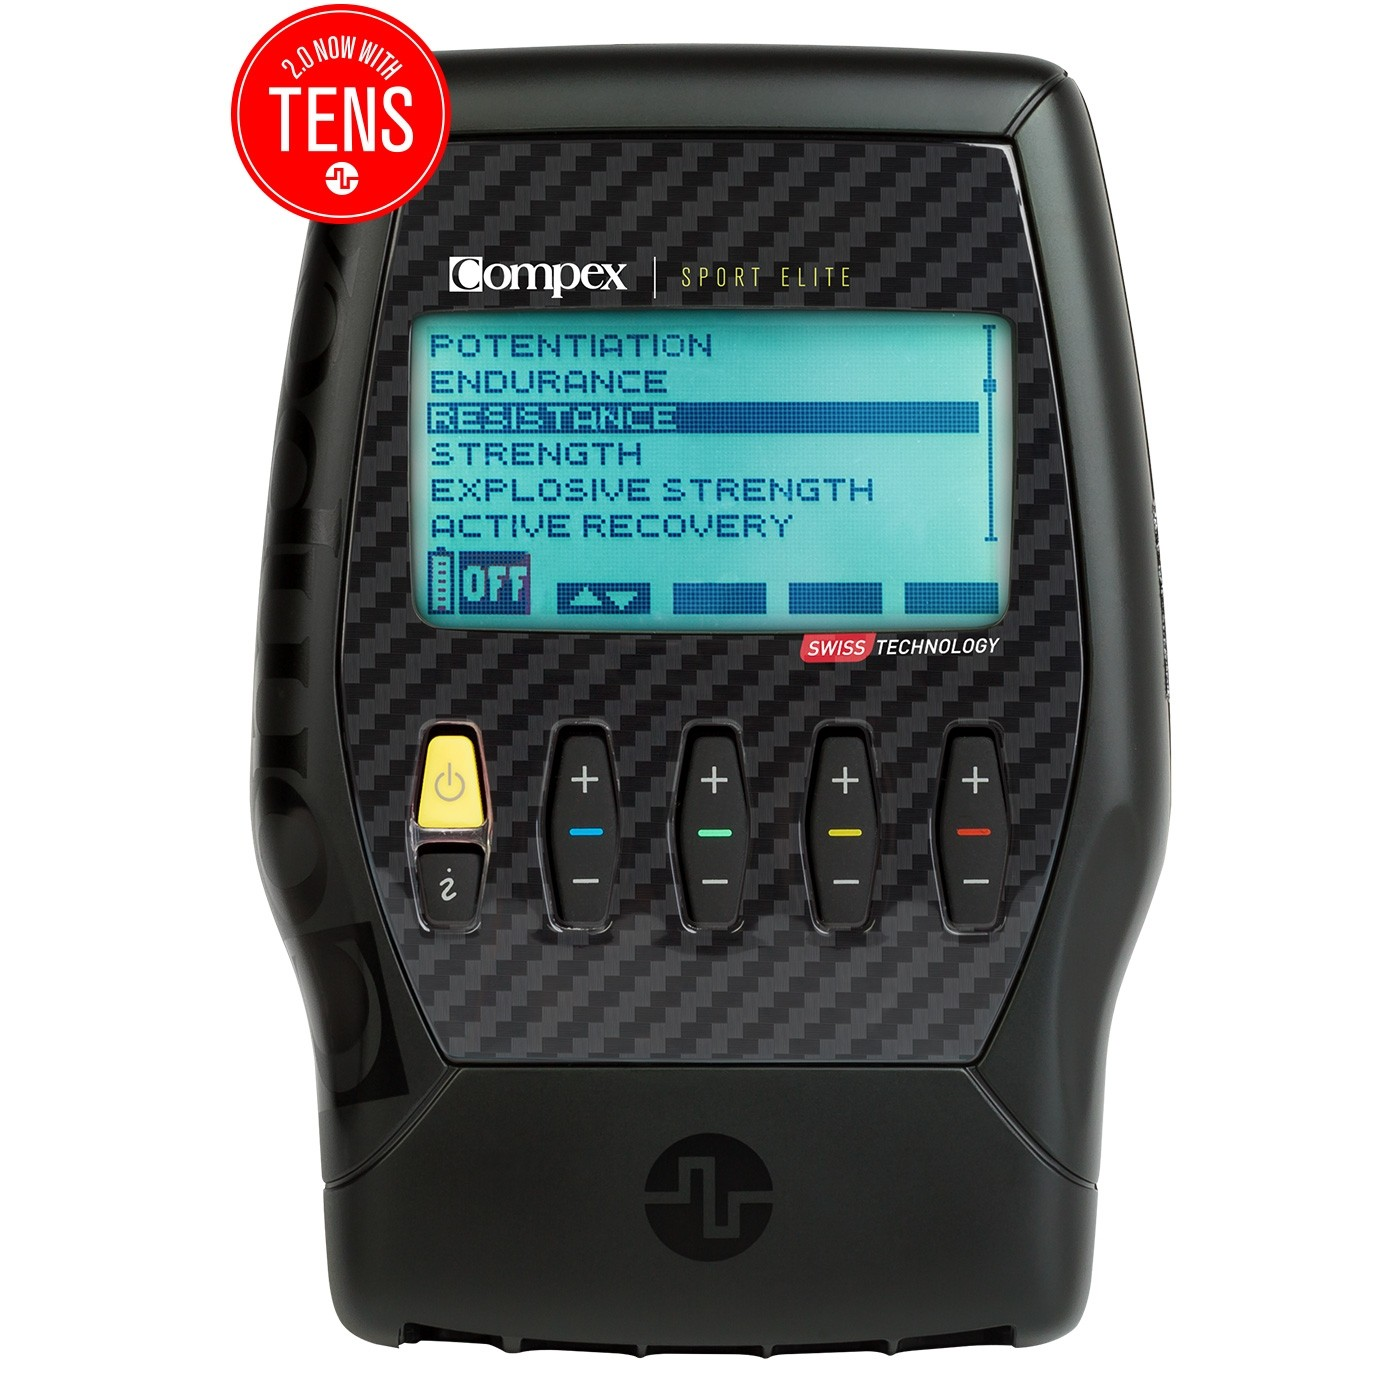 COMPEX SPORT ELITE 2.0 MUSCLE STIMULATOR KIT WITH TENS